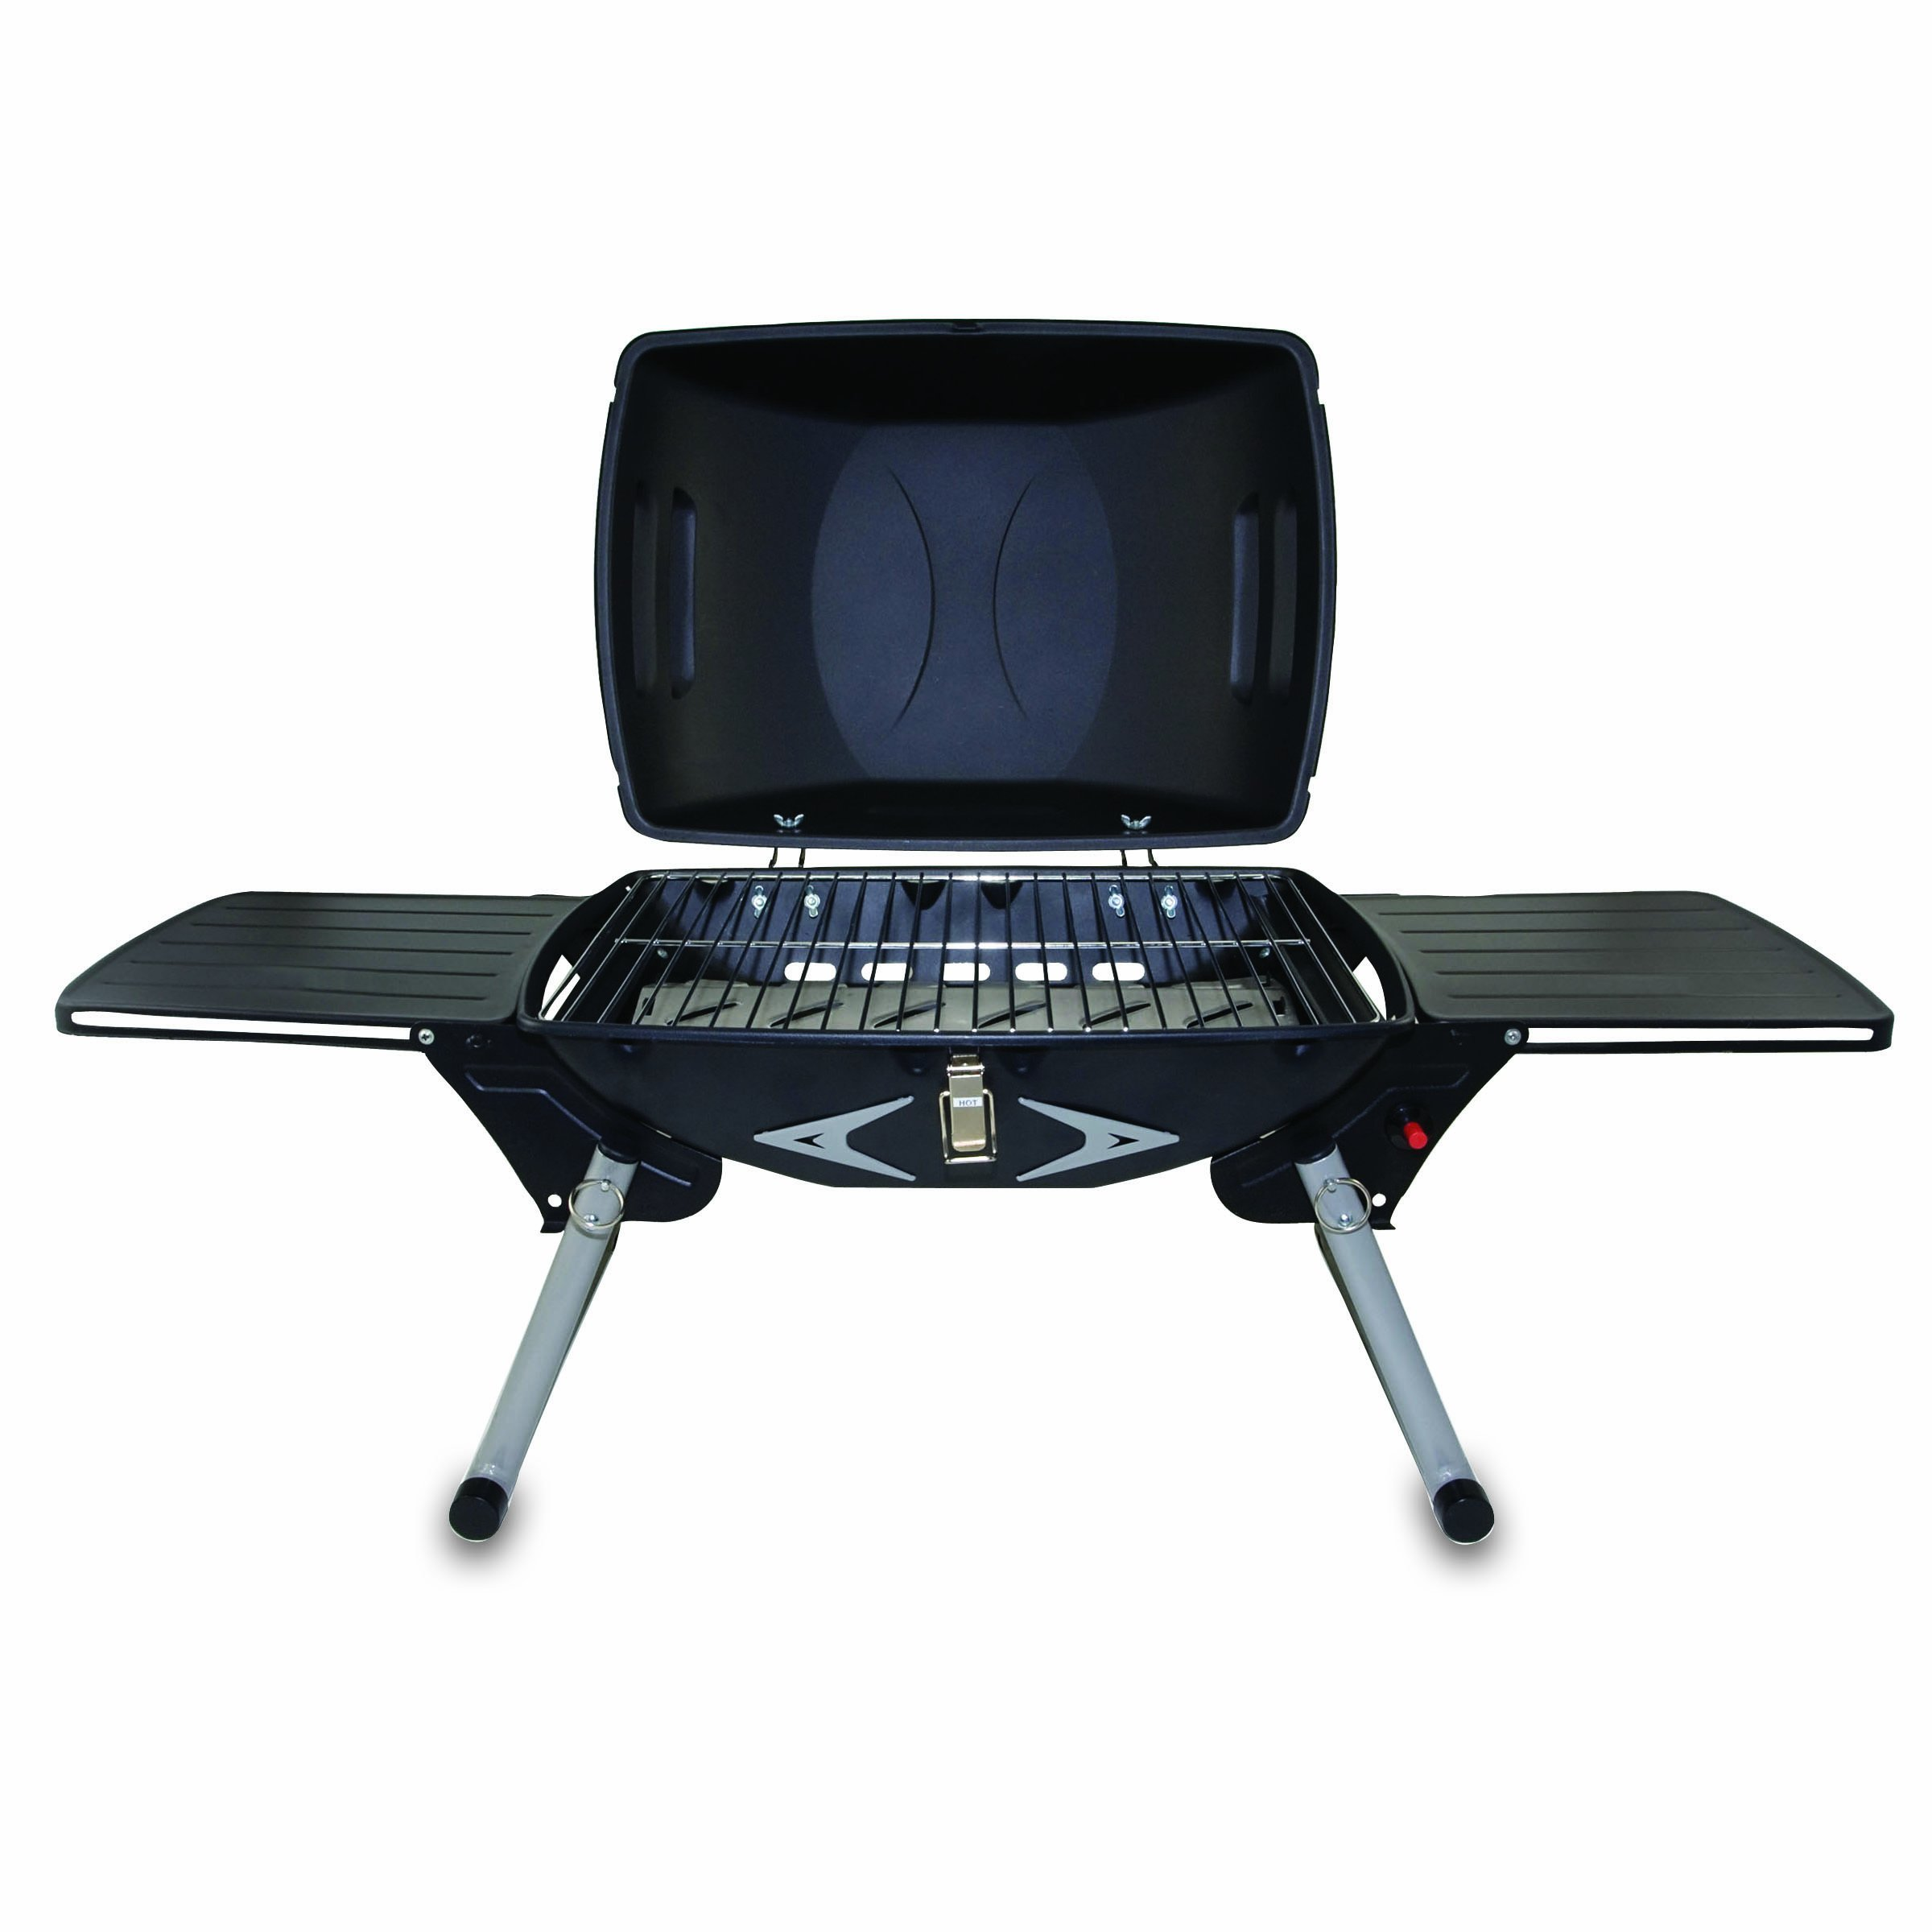 Picnic Time Portagrillo Portable Propane BBQ Grill by ONIVA - a Picnic Time brand (Image #1)